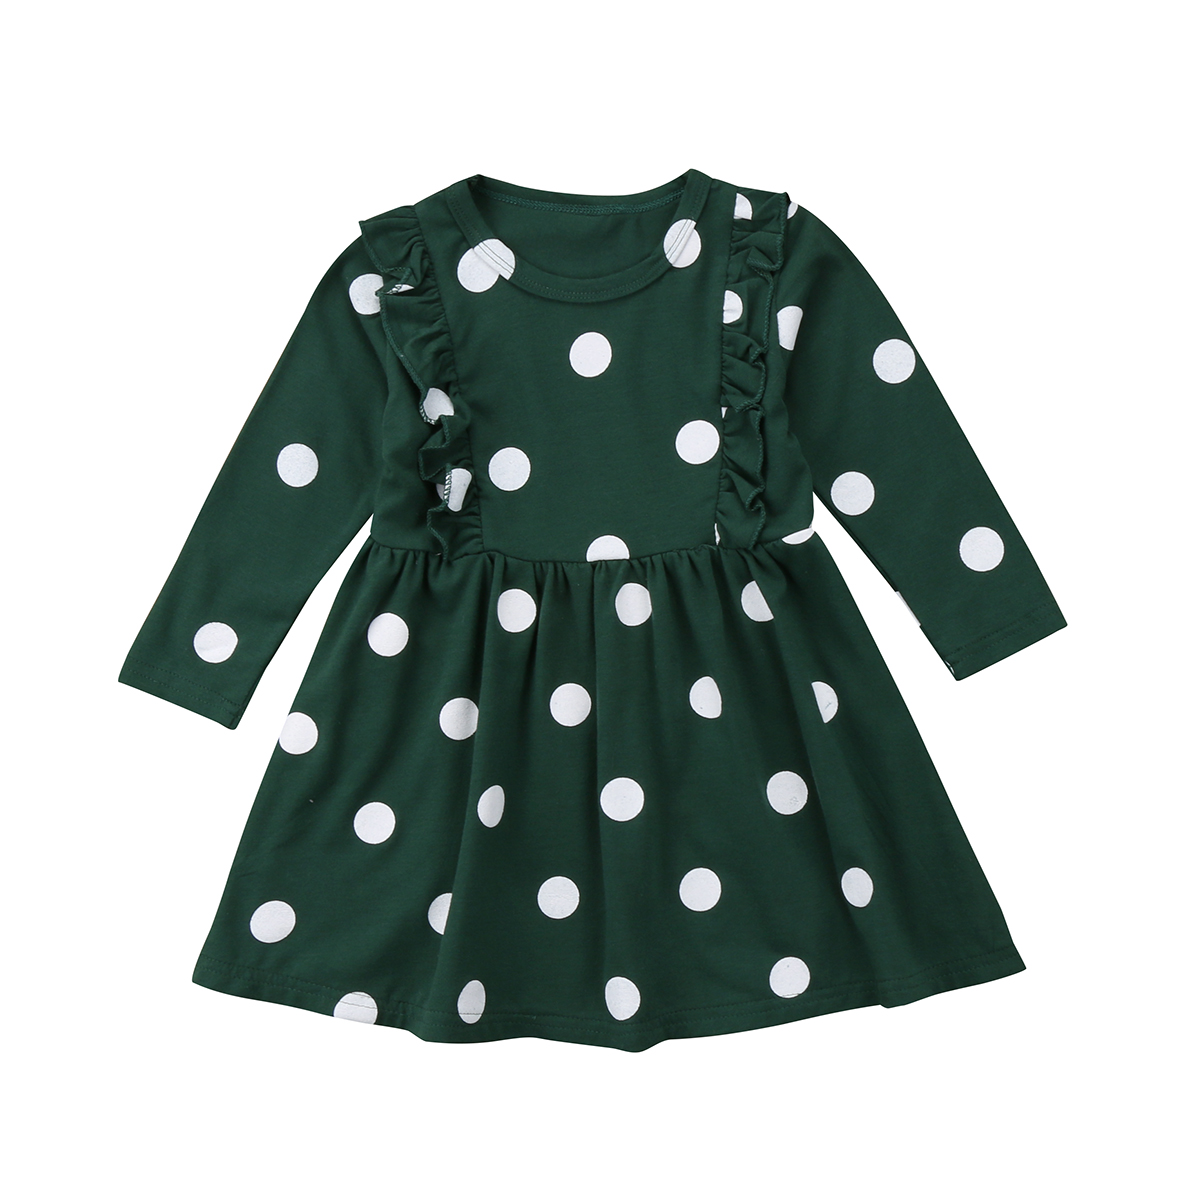 Girls Dress 2018 Brand Dot Printing Princess Dress Spring Style Long Sleeve Dress for Children Clothes vintage style scoop neck printing long sleeve dress for women